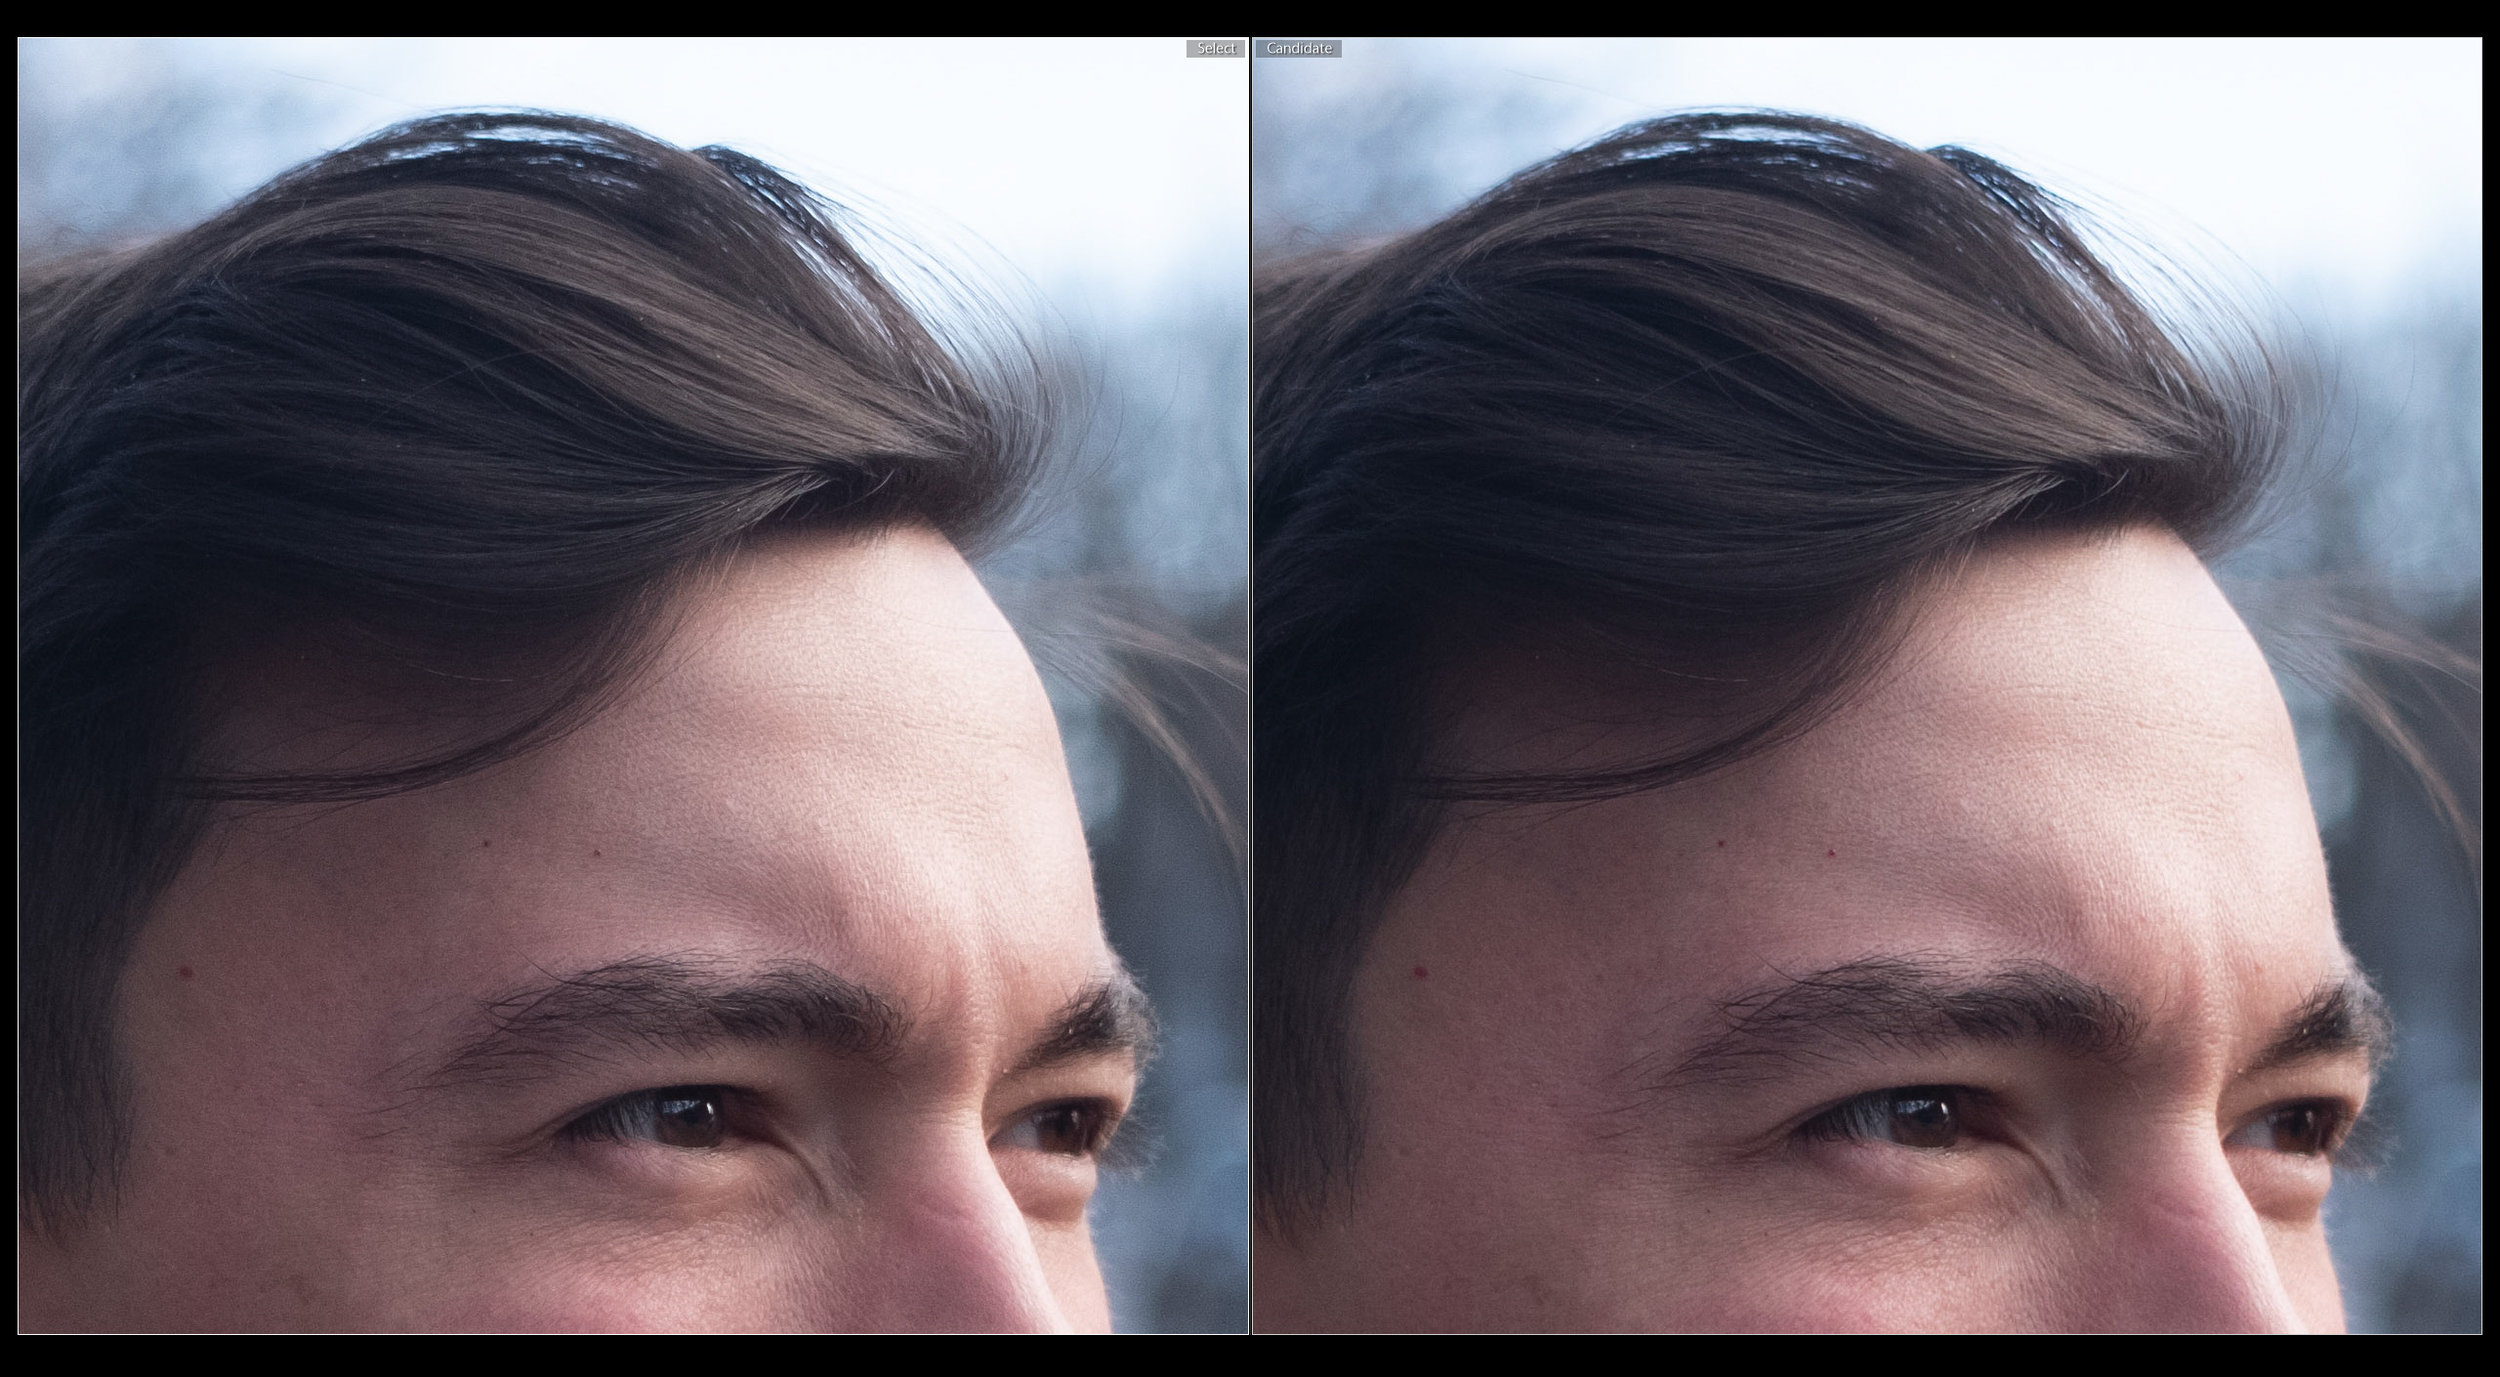 RAF left, DNG right compared in Lightroom CC latest version